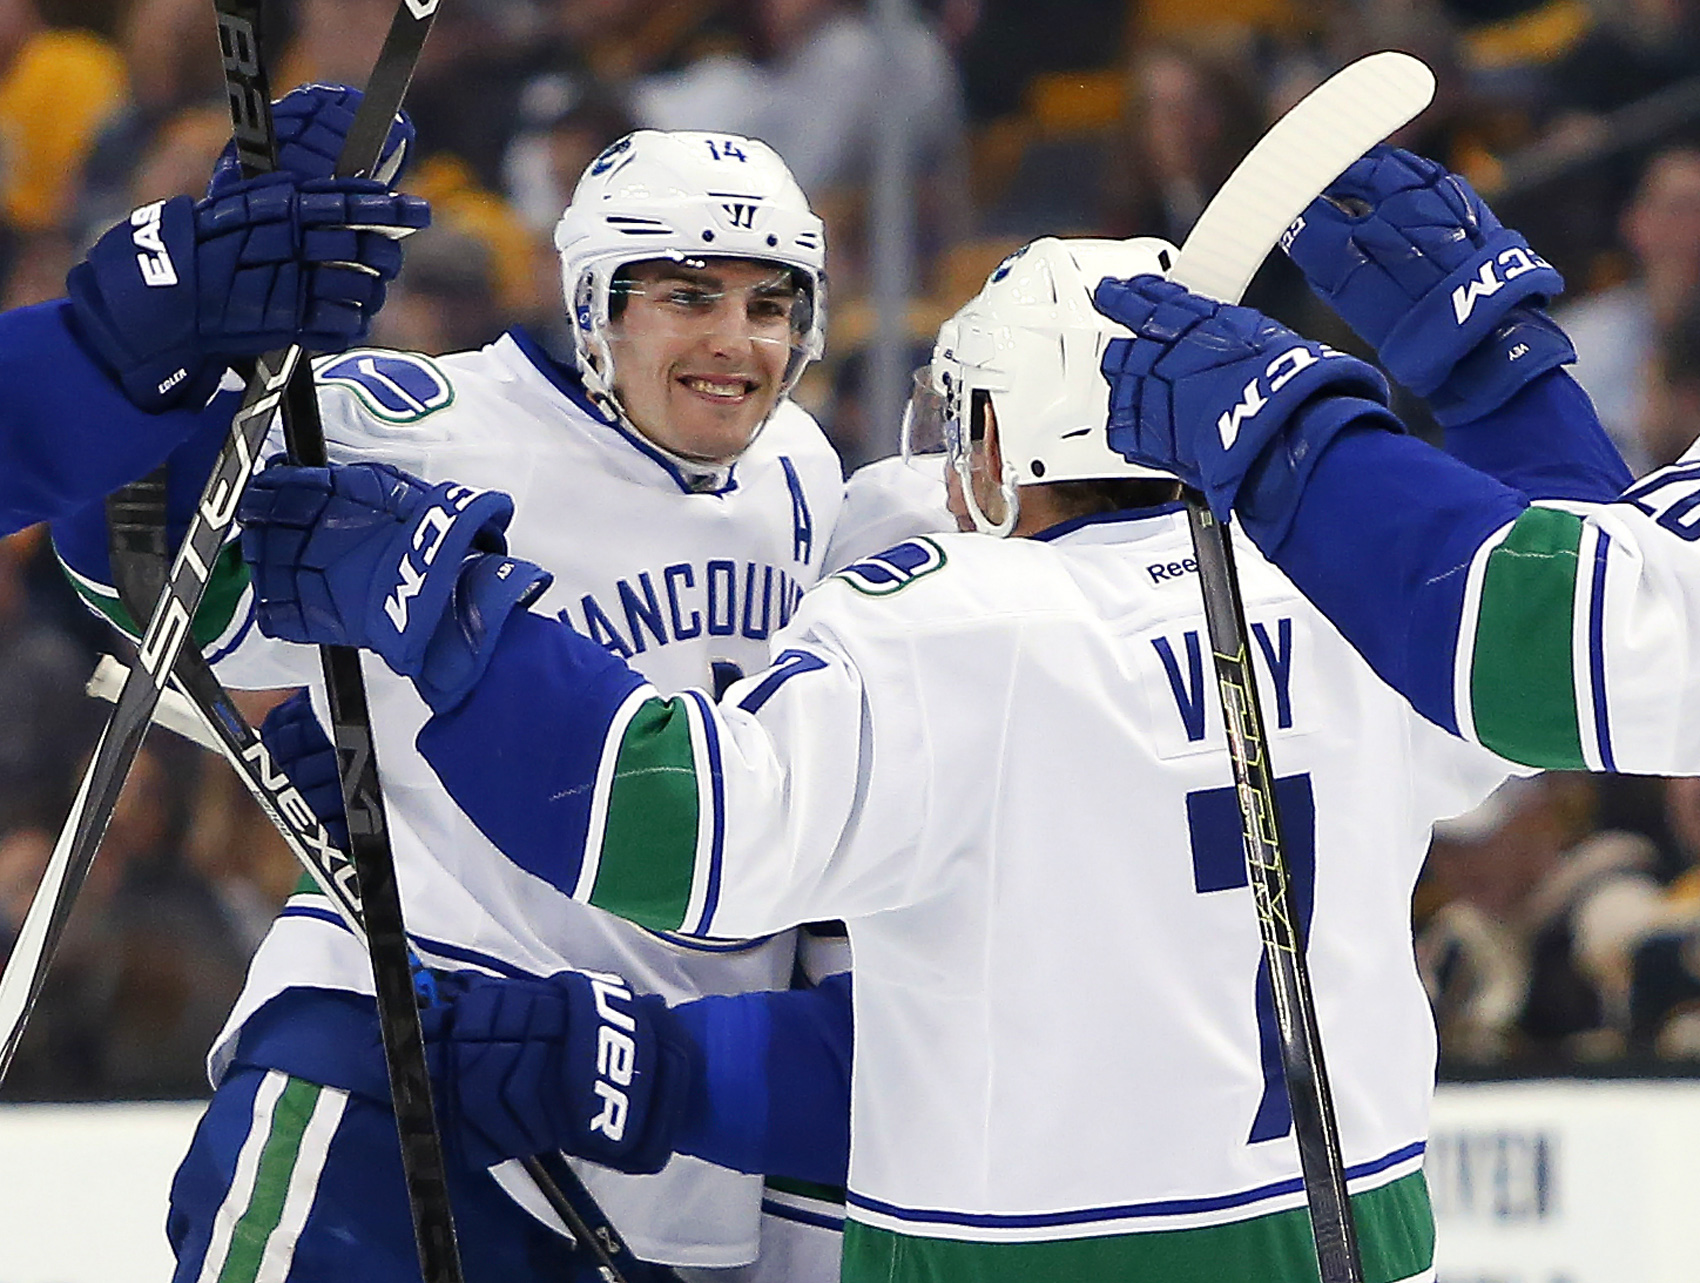 Nhl betting trends stats definition man of the match betting rules in poker